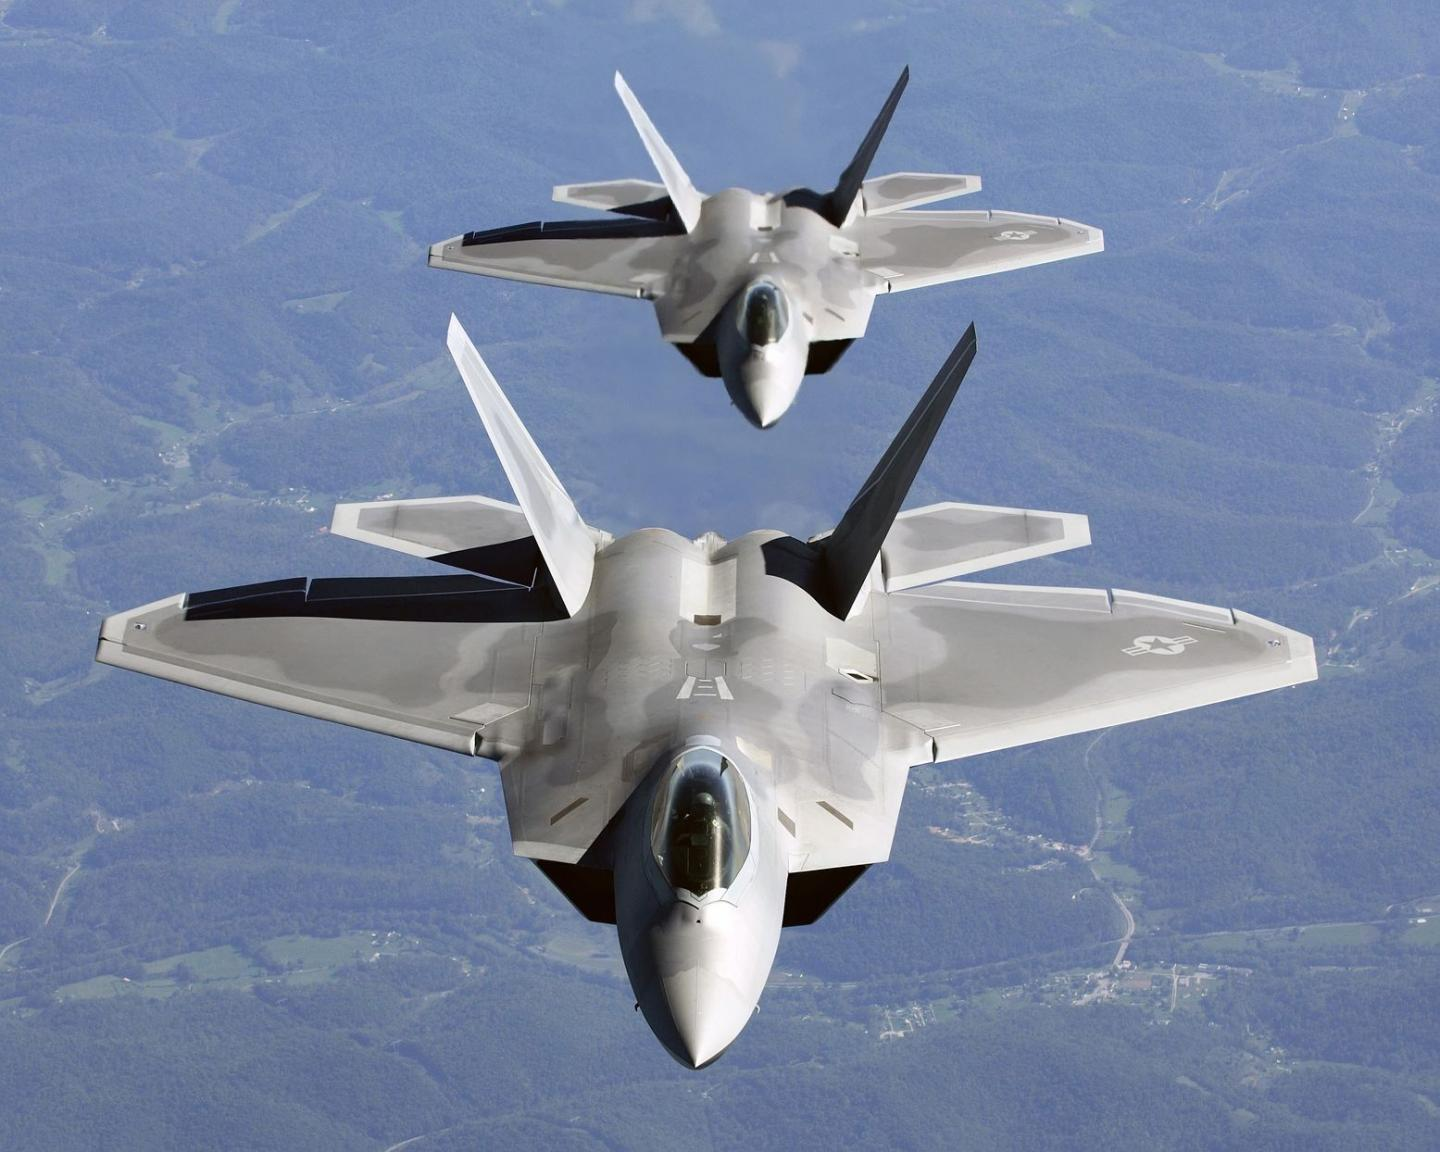 The Secret Powers of the F-22 and F-35 That Keeps Enemy Fighters Away